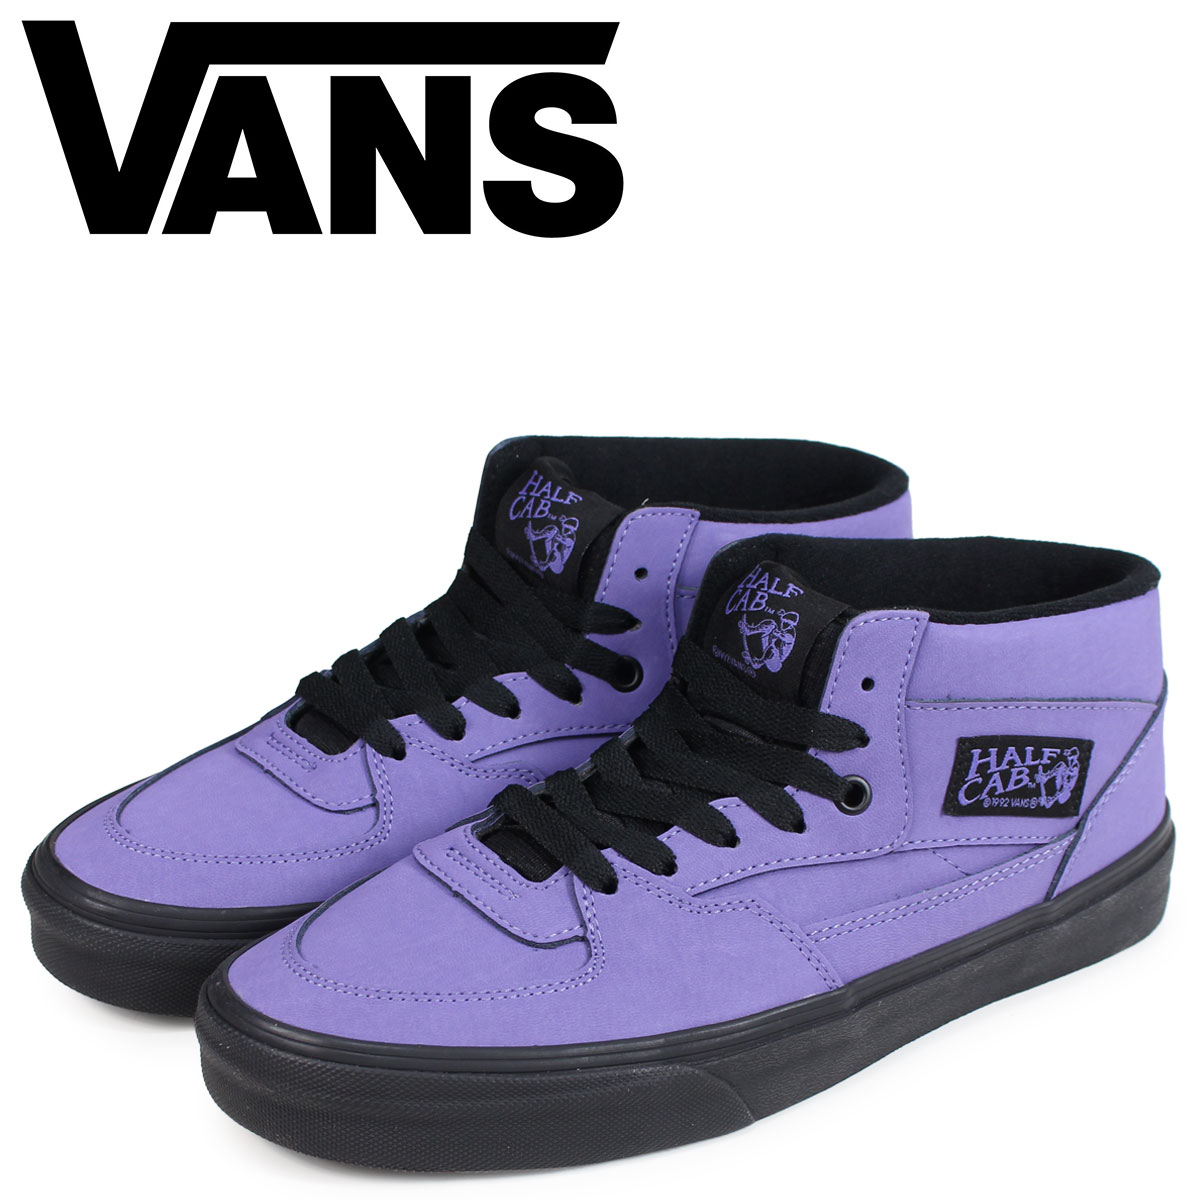 e41118c1a5 Vans VANS HALF CAB sneakers men station wagons half cab purple VN0A348EUMK   load planned Shinnyu load in reservation product 1 11 containing